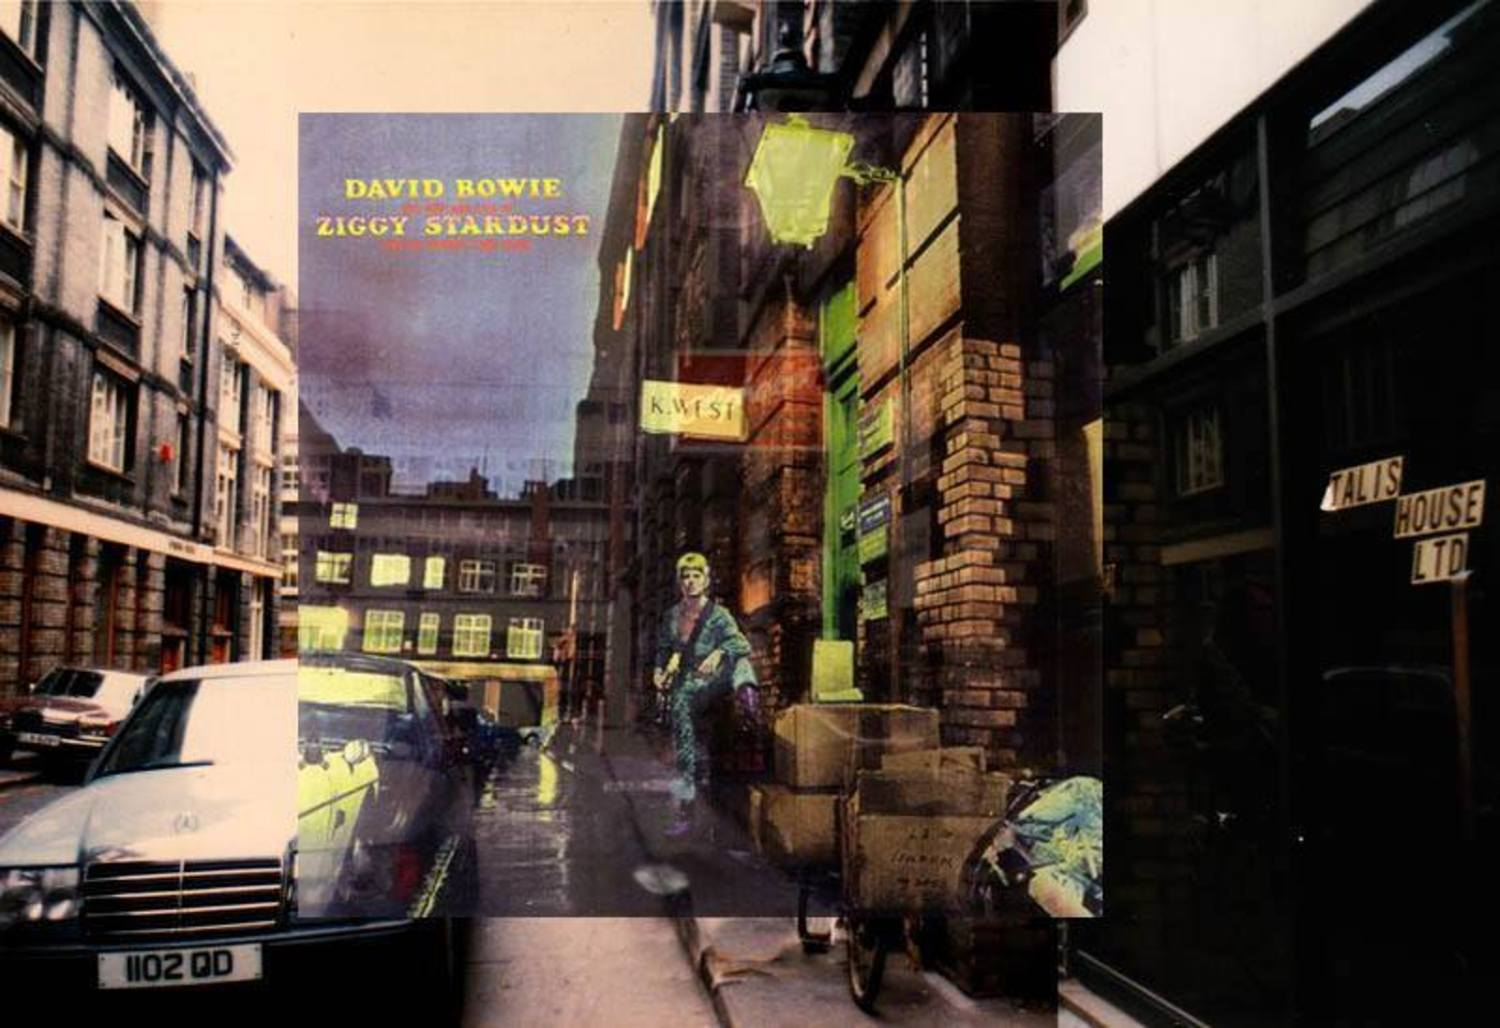 DAVID BOWIE - THE RISE AND FALL OF ZIGGY STARDUST AND THE SPIDERS FROM MARS (1972, RCA). . .Location: 23 Heddon Street (central London near Carnaby Street). . .Cover photo by Brian Ward. Artwork by Terry Pastor for Main Artery. . .  Background photo taken in 1987. . .The cover shot was one of 17 shots taken in black and white and was later colorized for the cover. . .For more photos of this location see http://www.popspotsnyc.com/london/ )